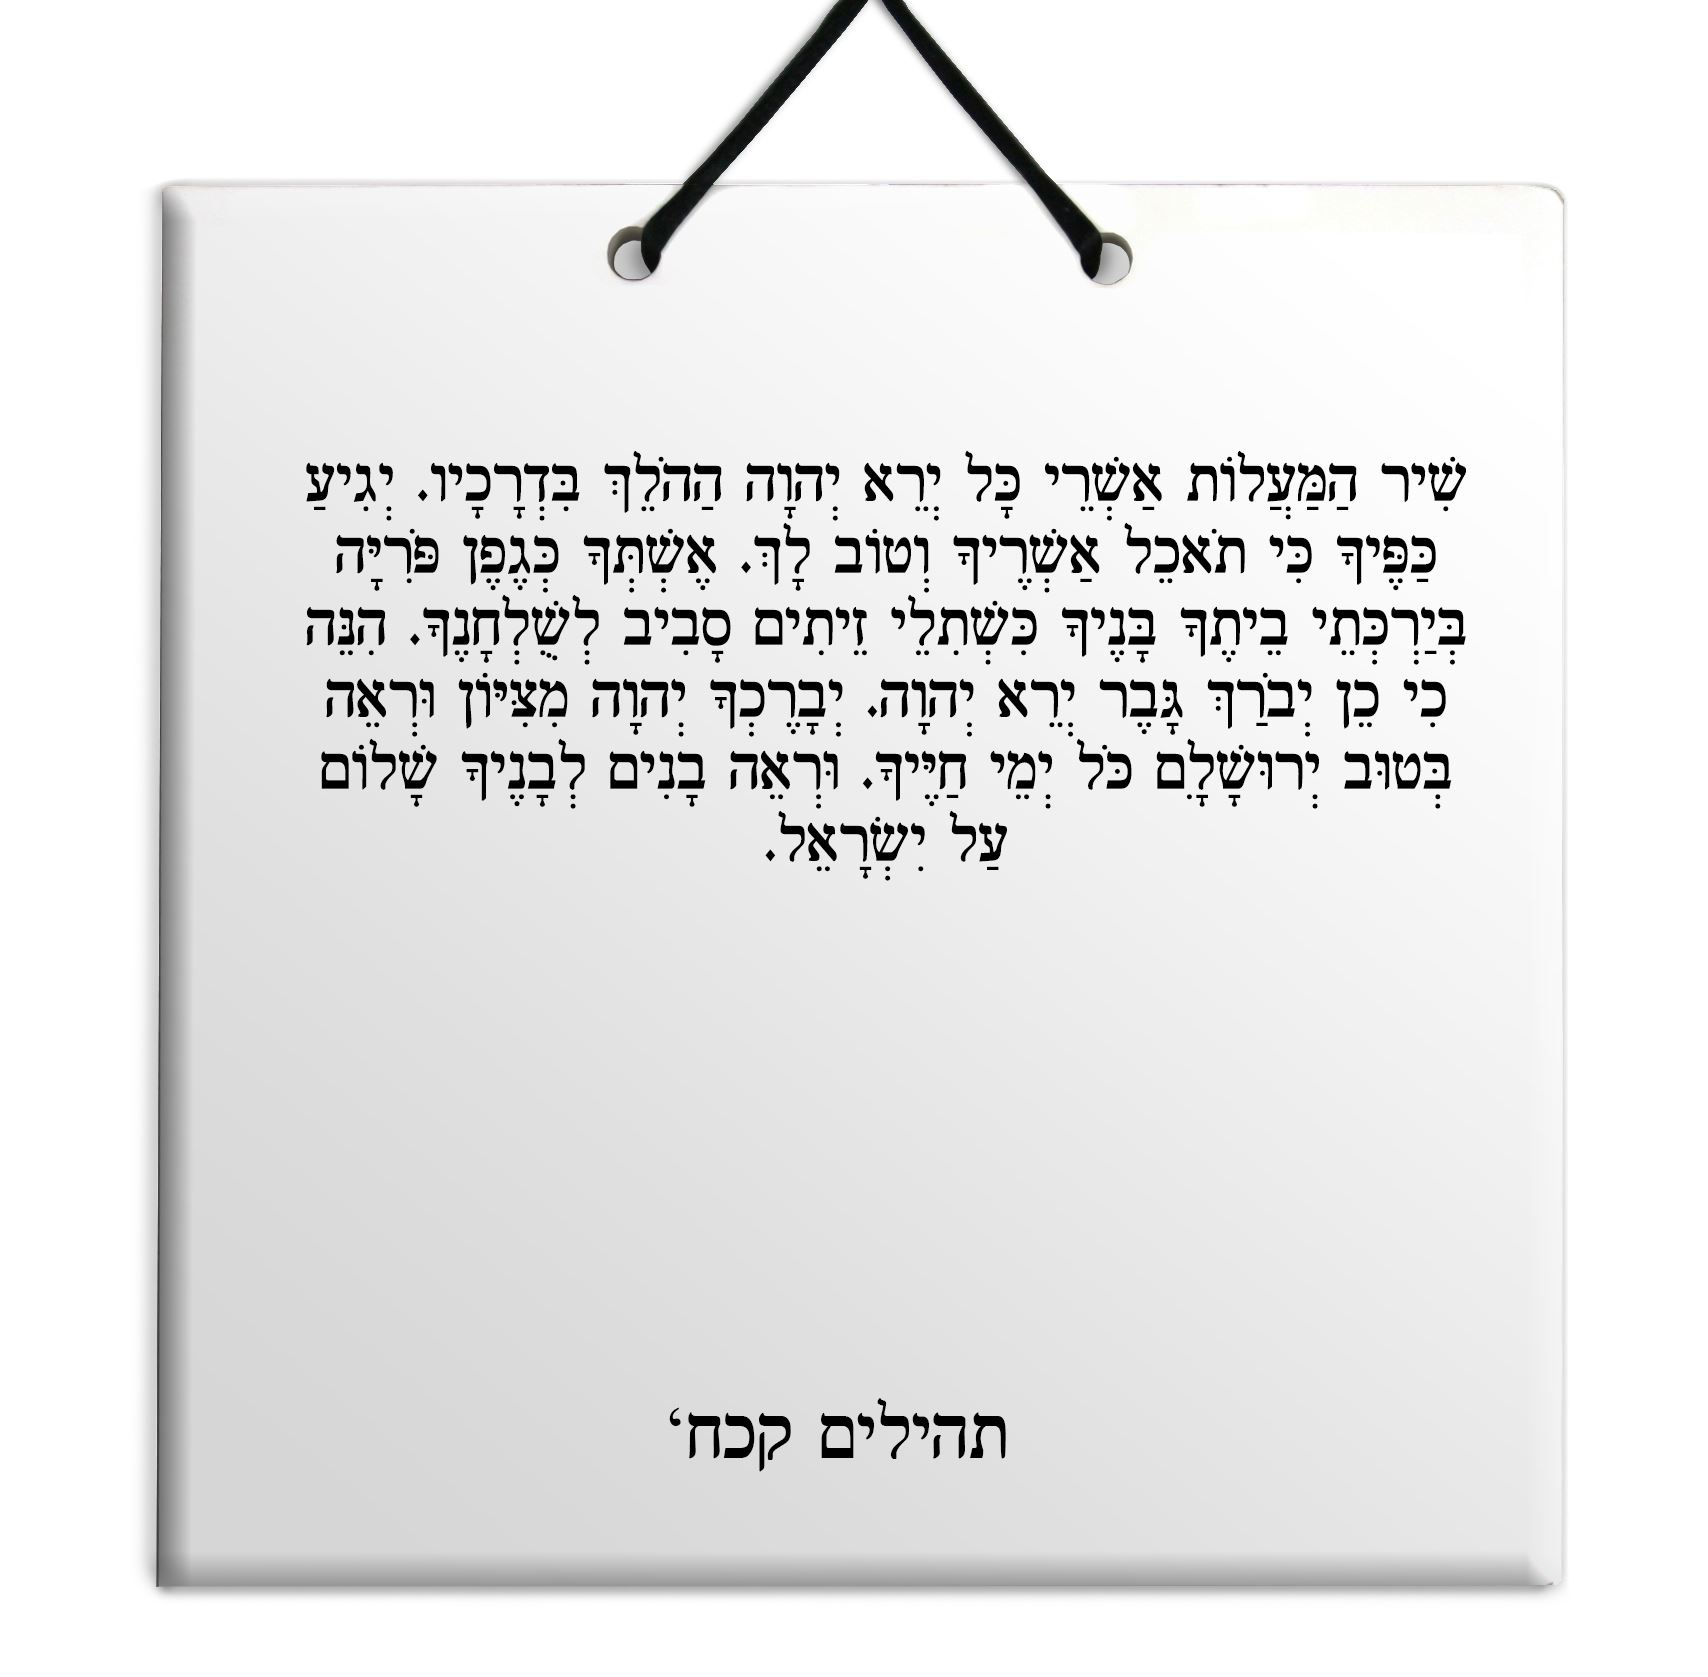 Details about Hebrew Book of Psalms Ceramic TILE holy bible Tehillim  Chapter 128 תהילים עברית